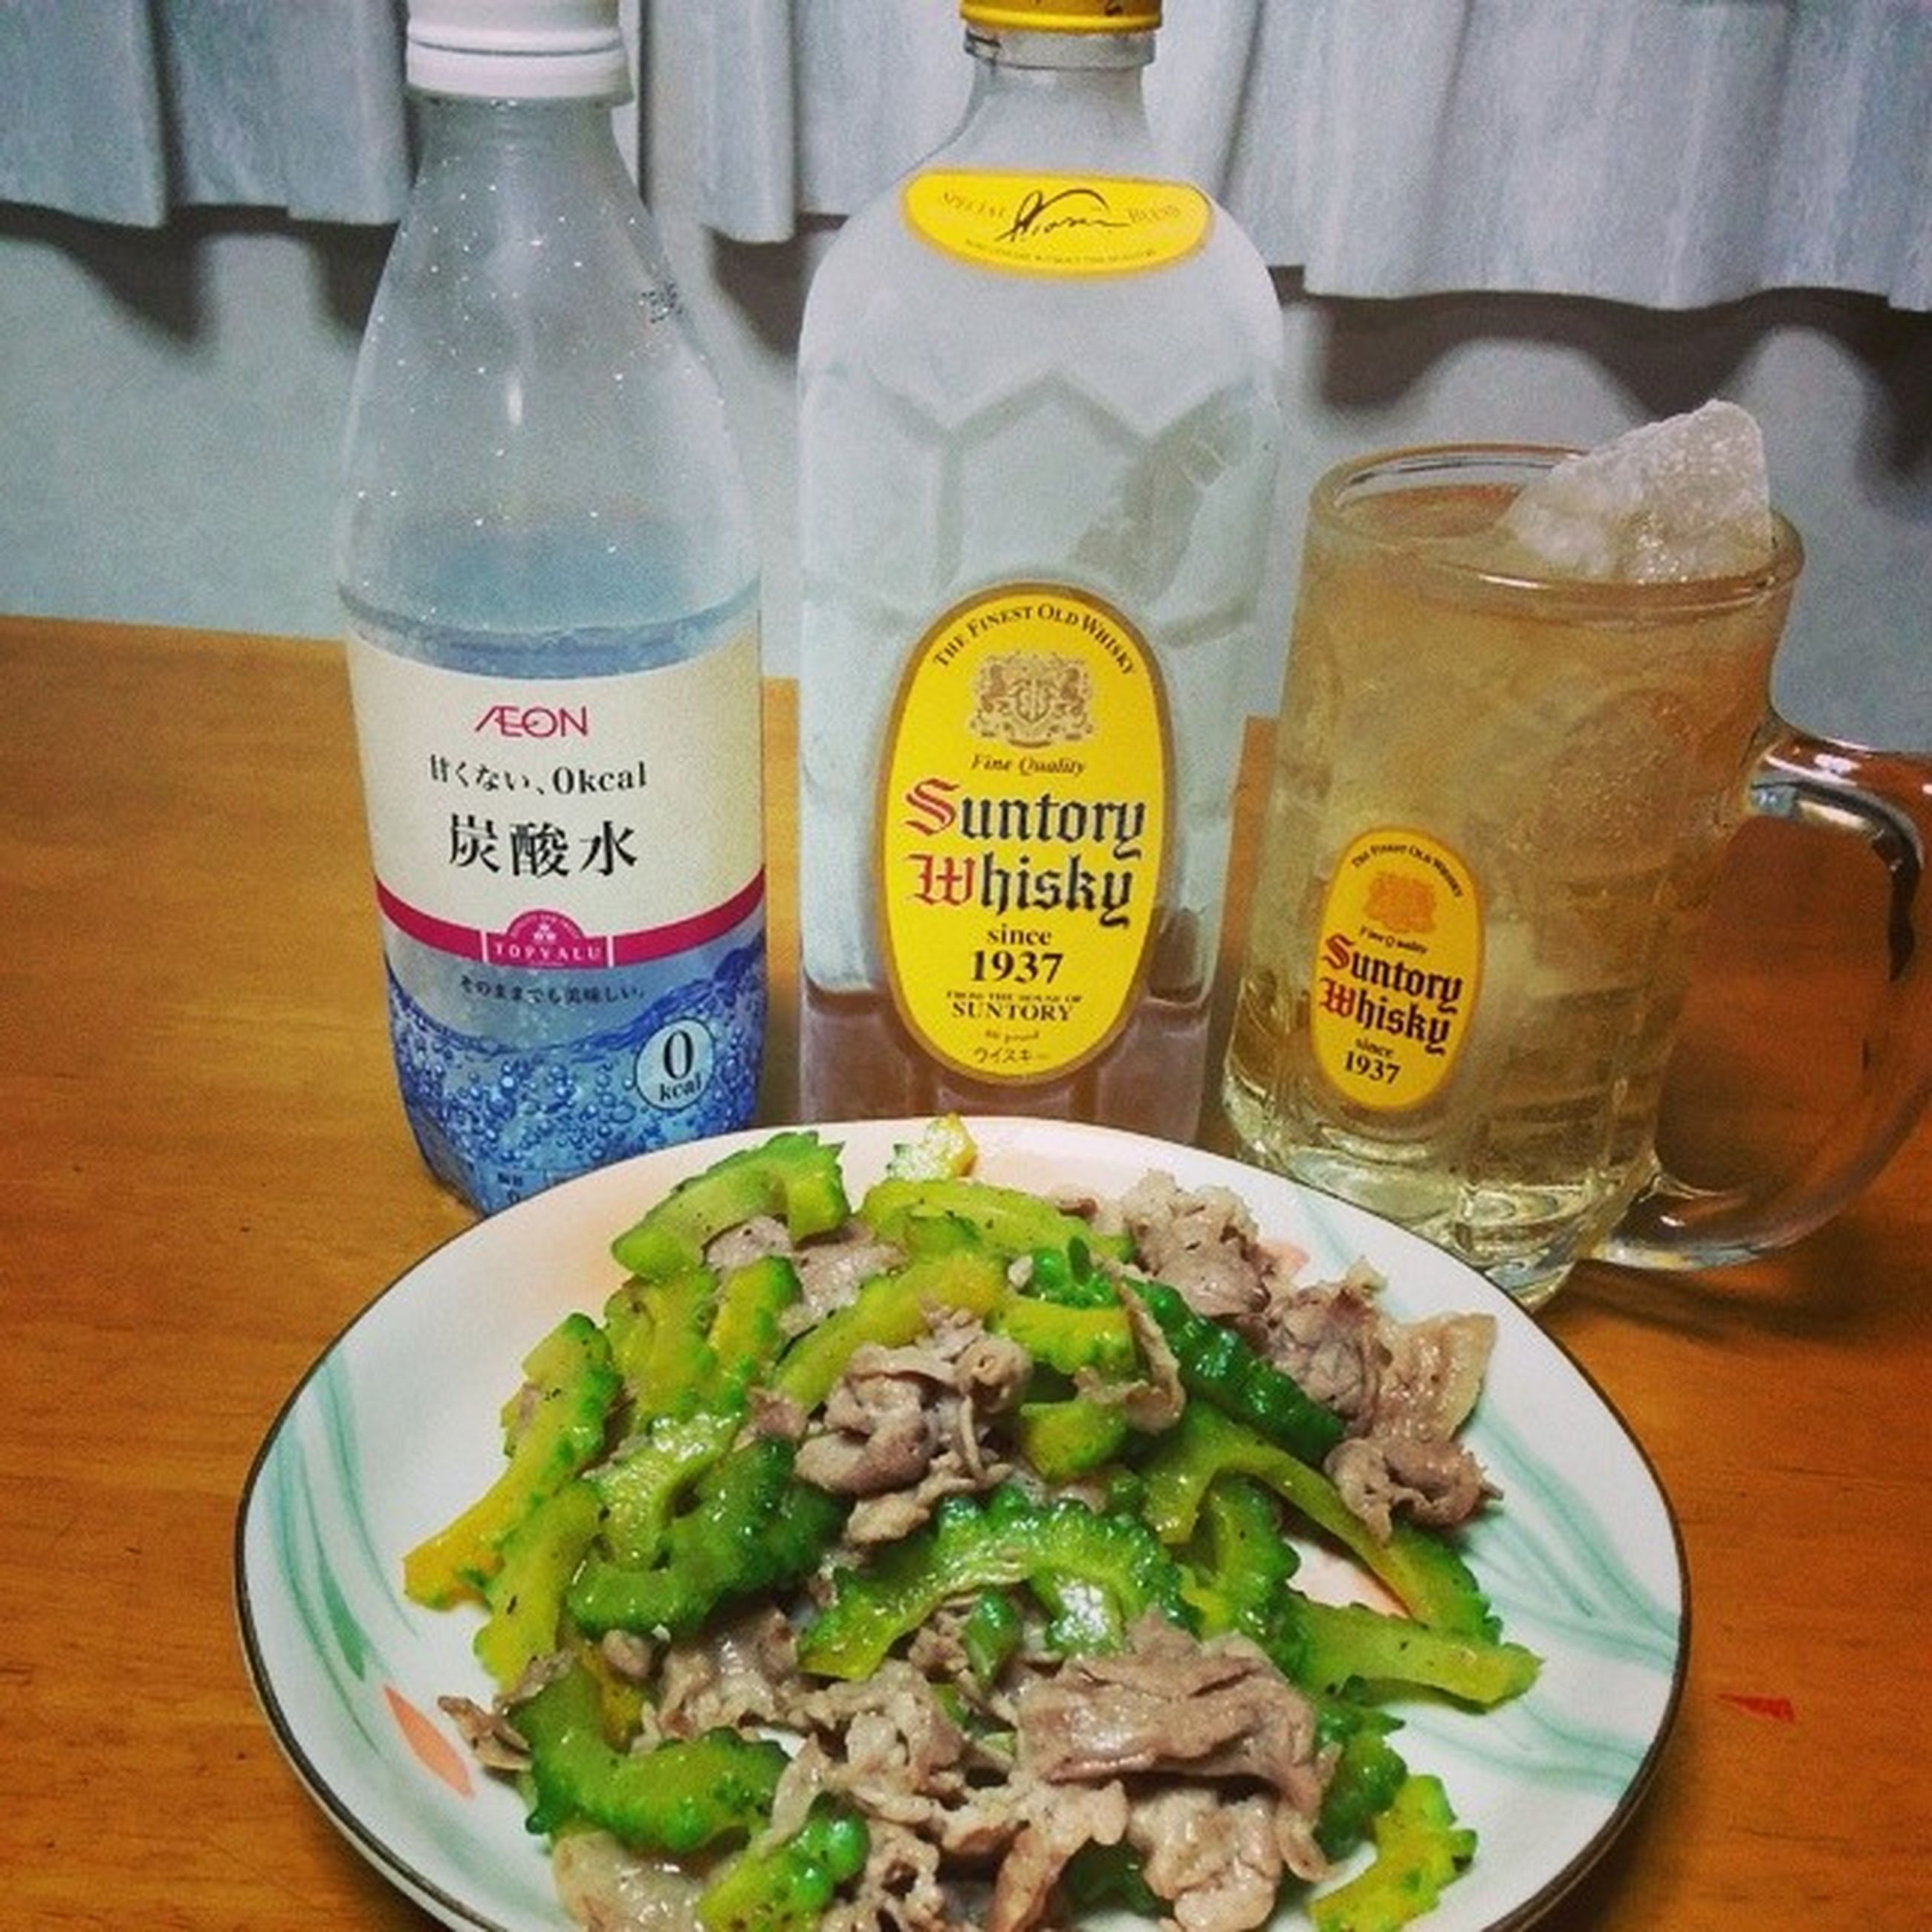 food and drink, indoors, food, freshness, still life, table, healthy eating, plate, ready-to-eat, drink, drinking glass, text, refreshment, high angle view, close-up, variation, serving size, western script, no people, jar